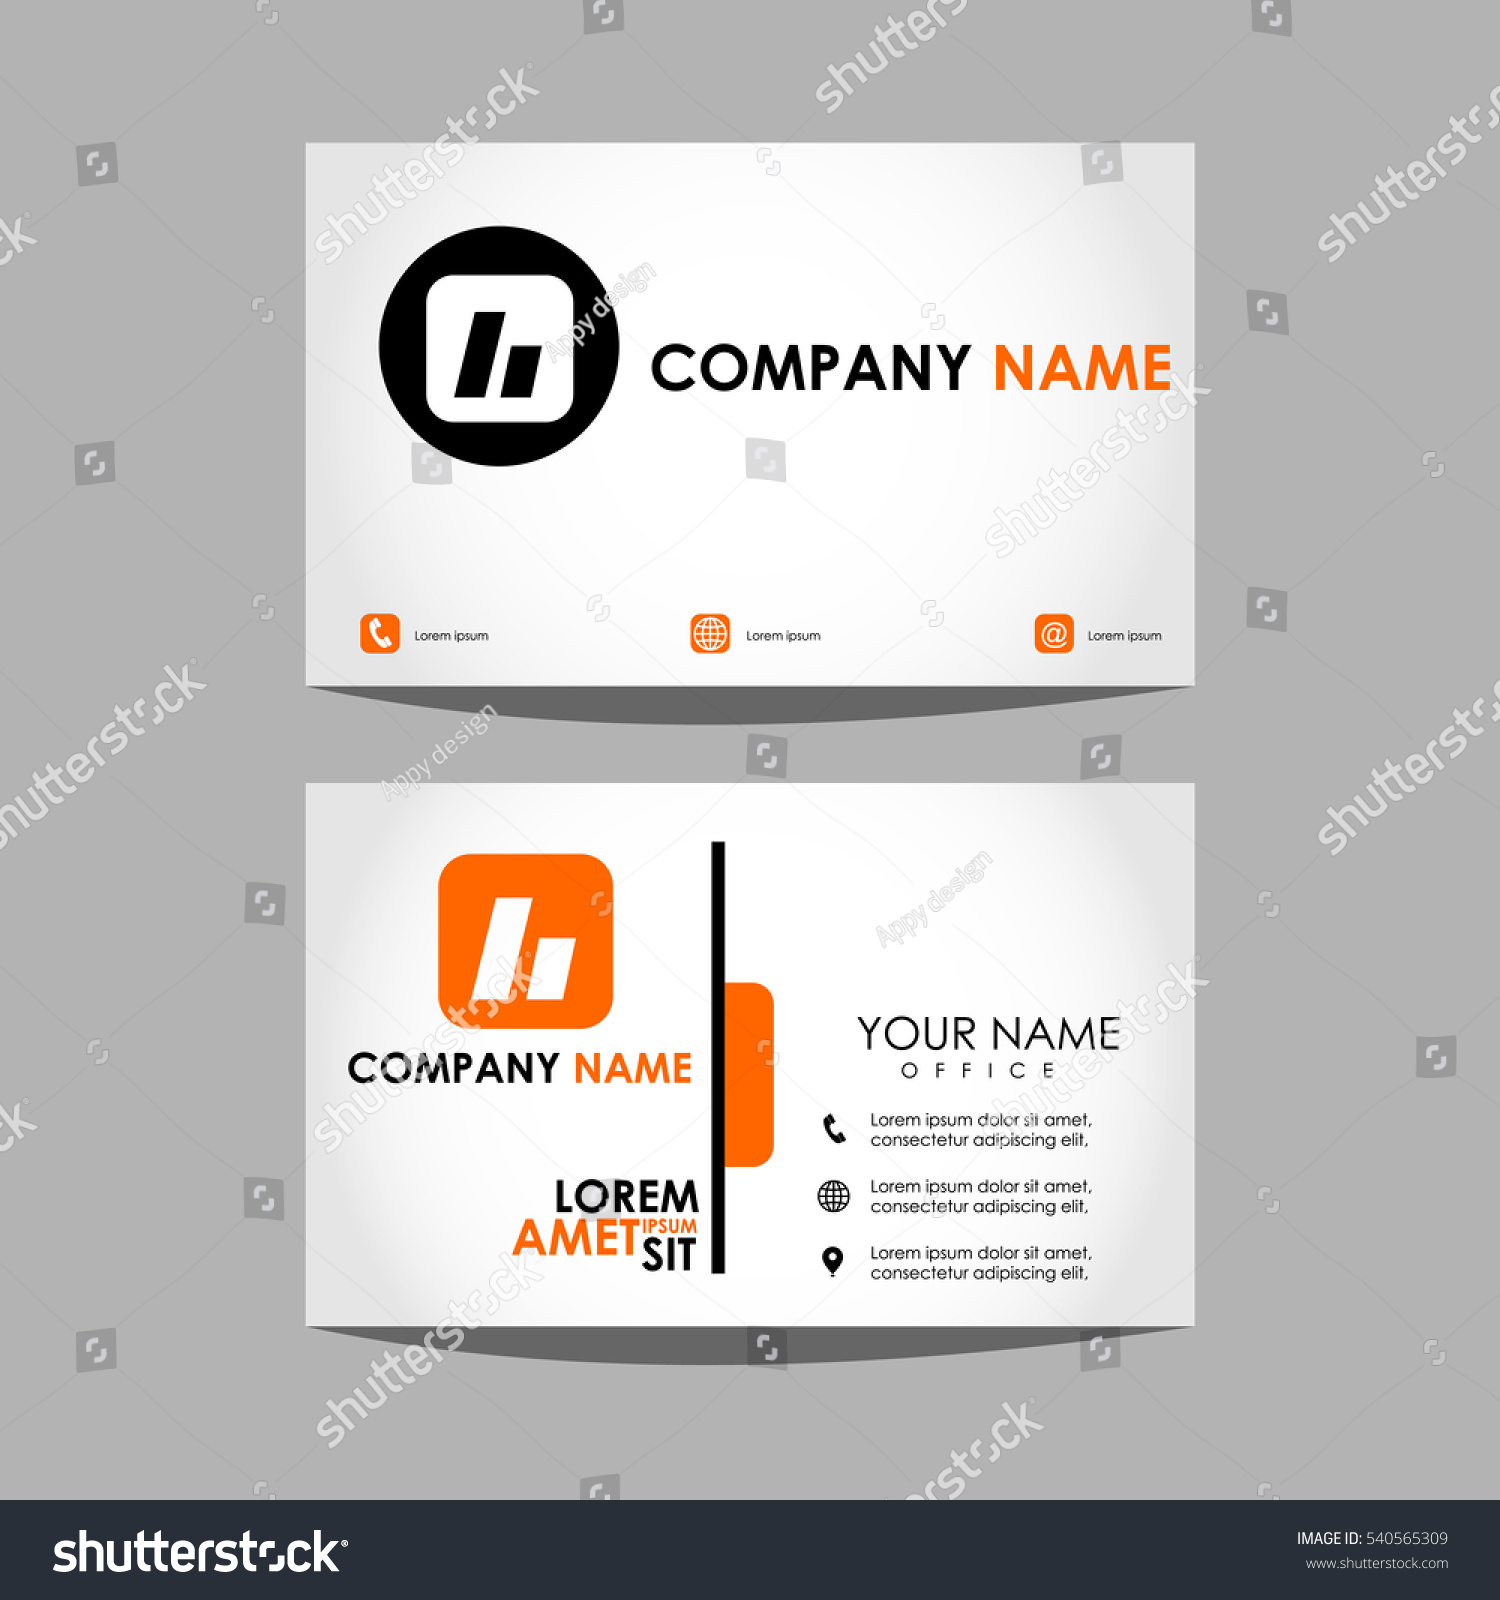 Layout Design Template Id Card Business Stock Vector 540565309 ...